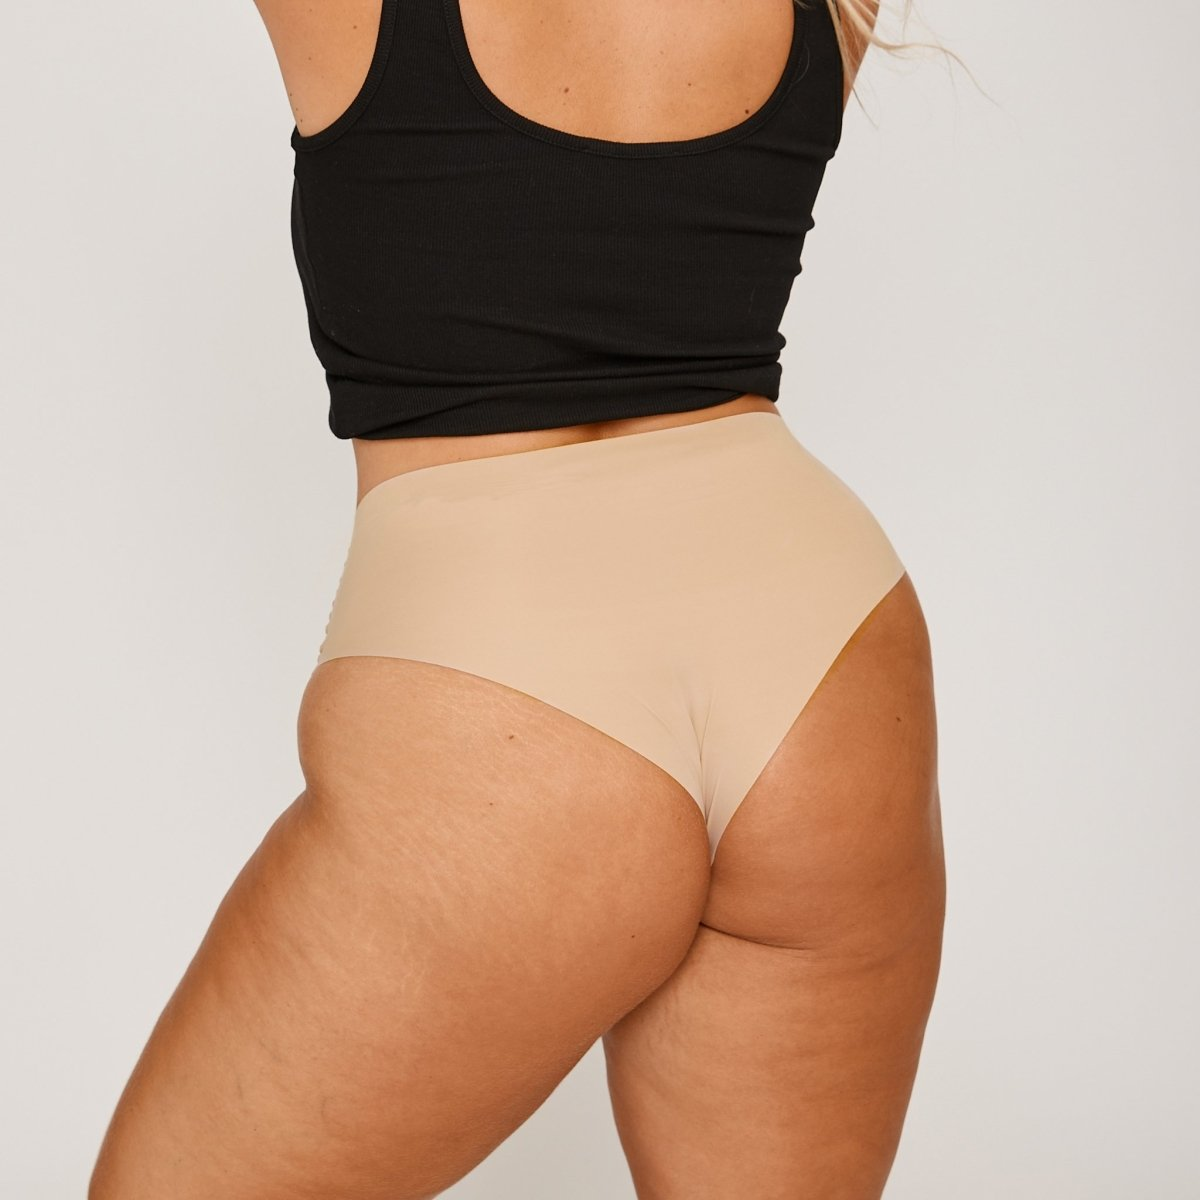 Mid-Rise Cheeky - Latte - Peach Underwear